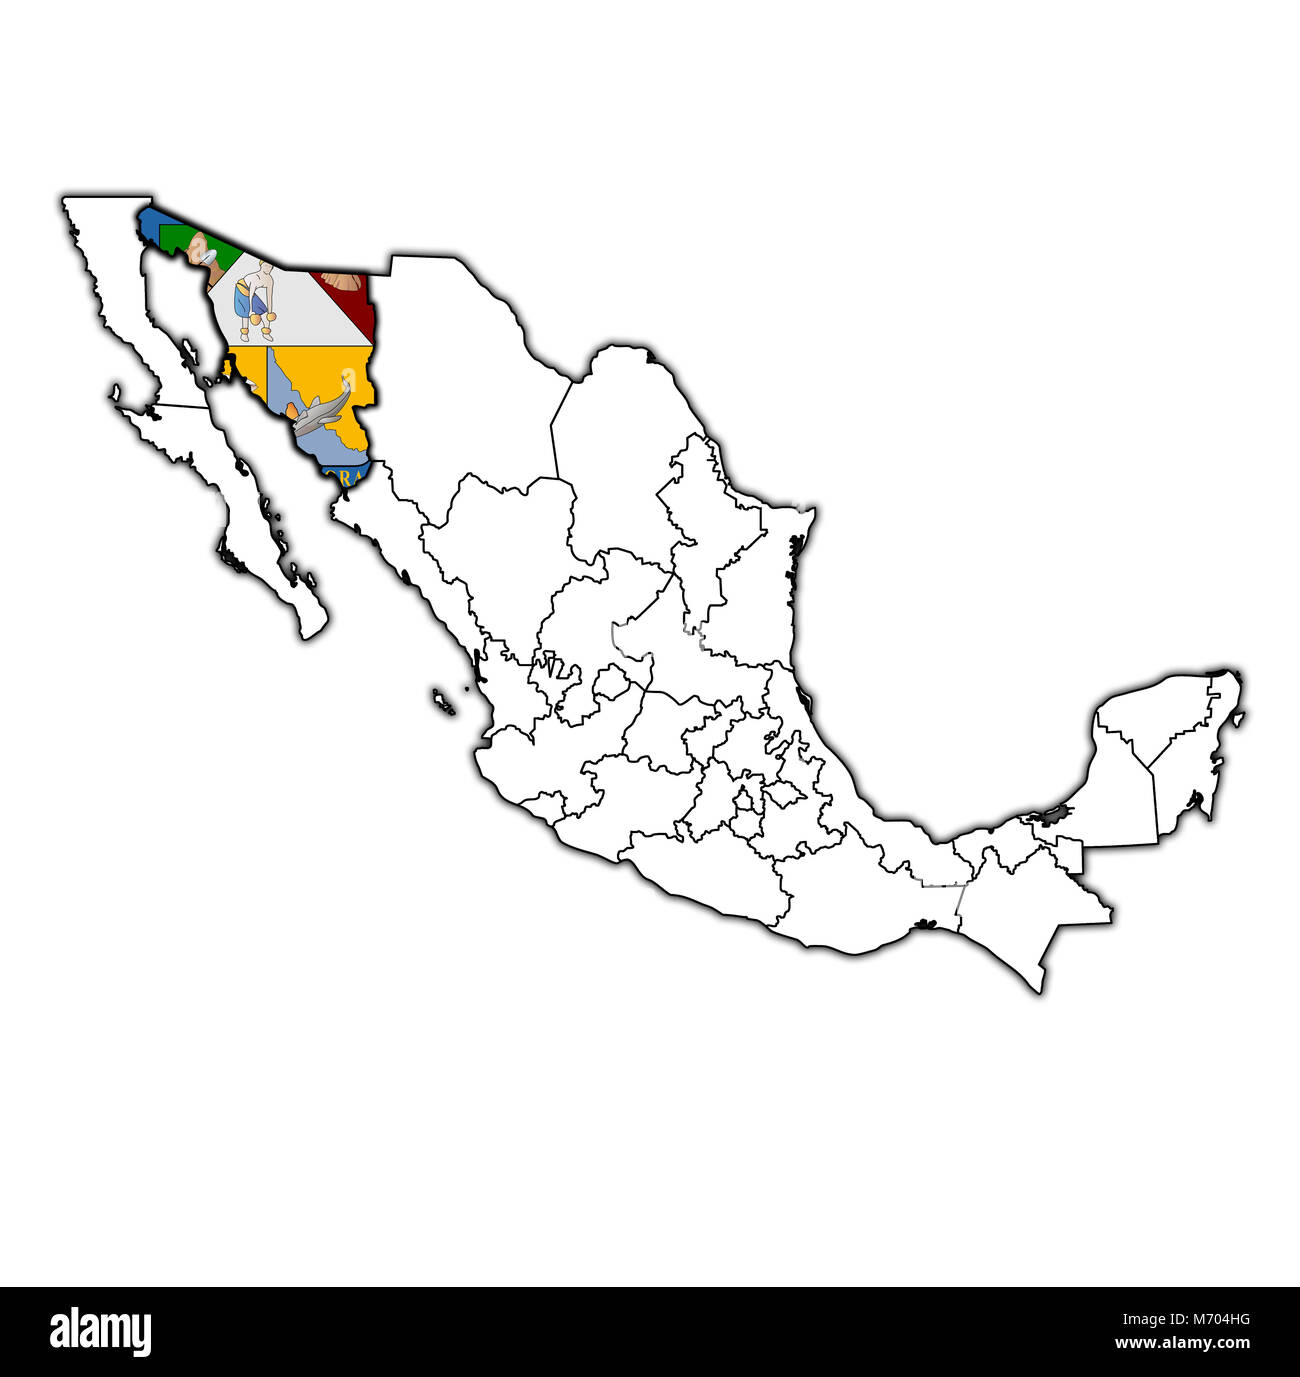 emblem of Sonora state on map with administrative divisions and borders of Mexico - Stock Image